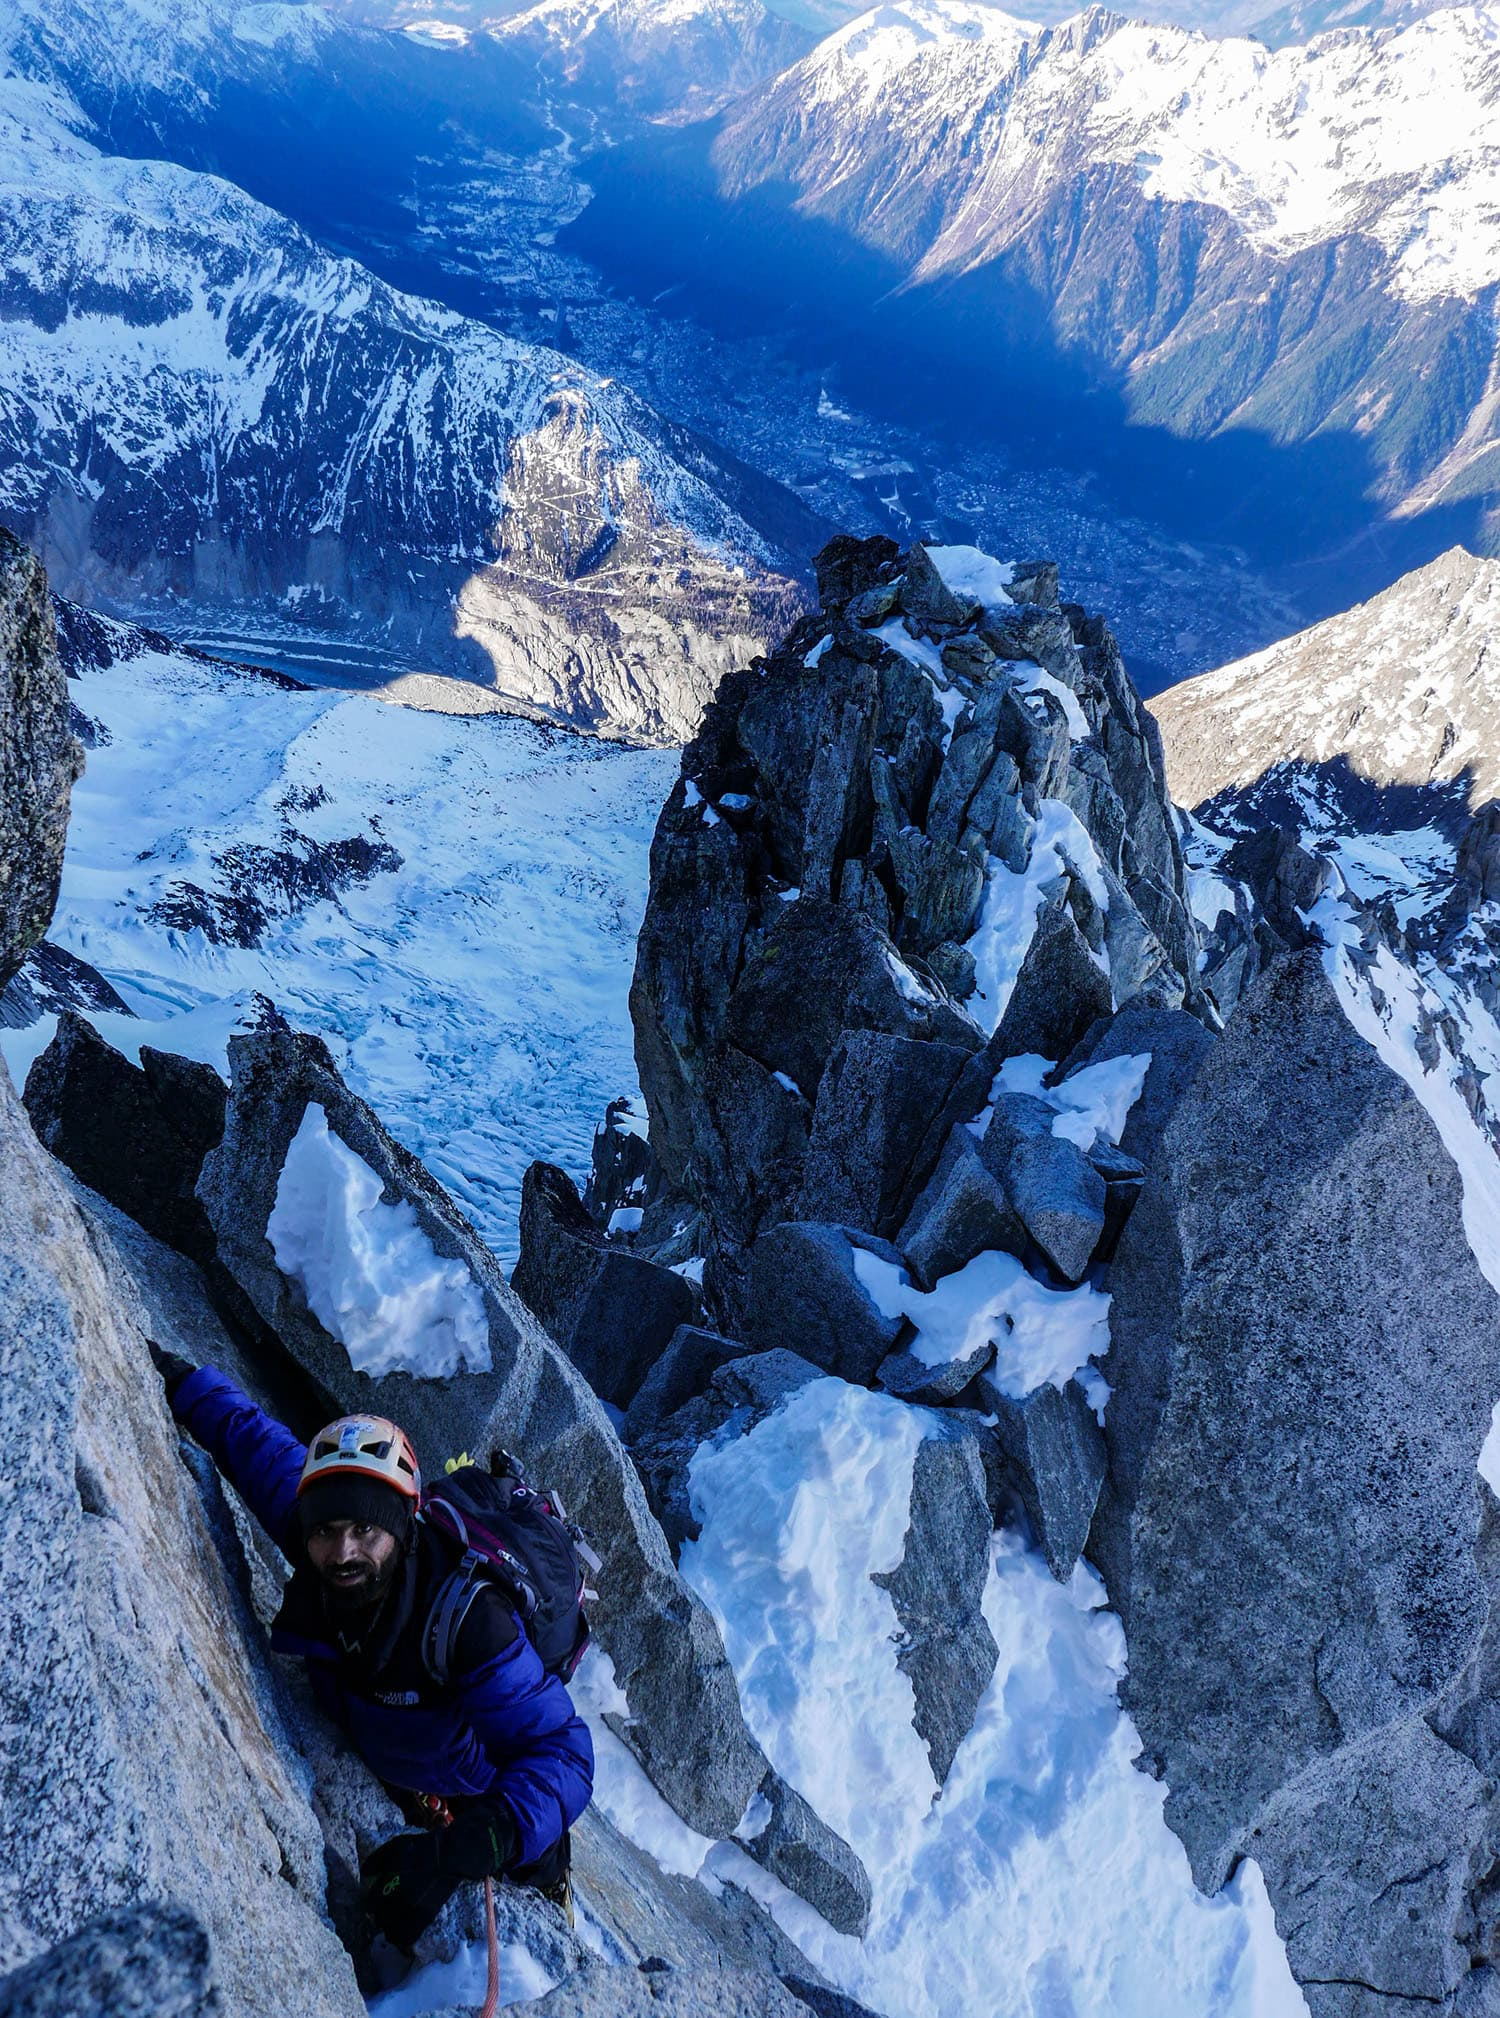 The climb to the Petite Aiguille Verte summit not only involved snow, but rock and ice as well.